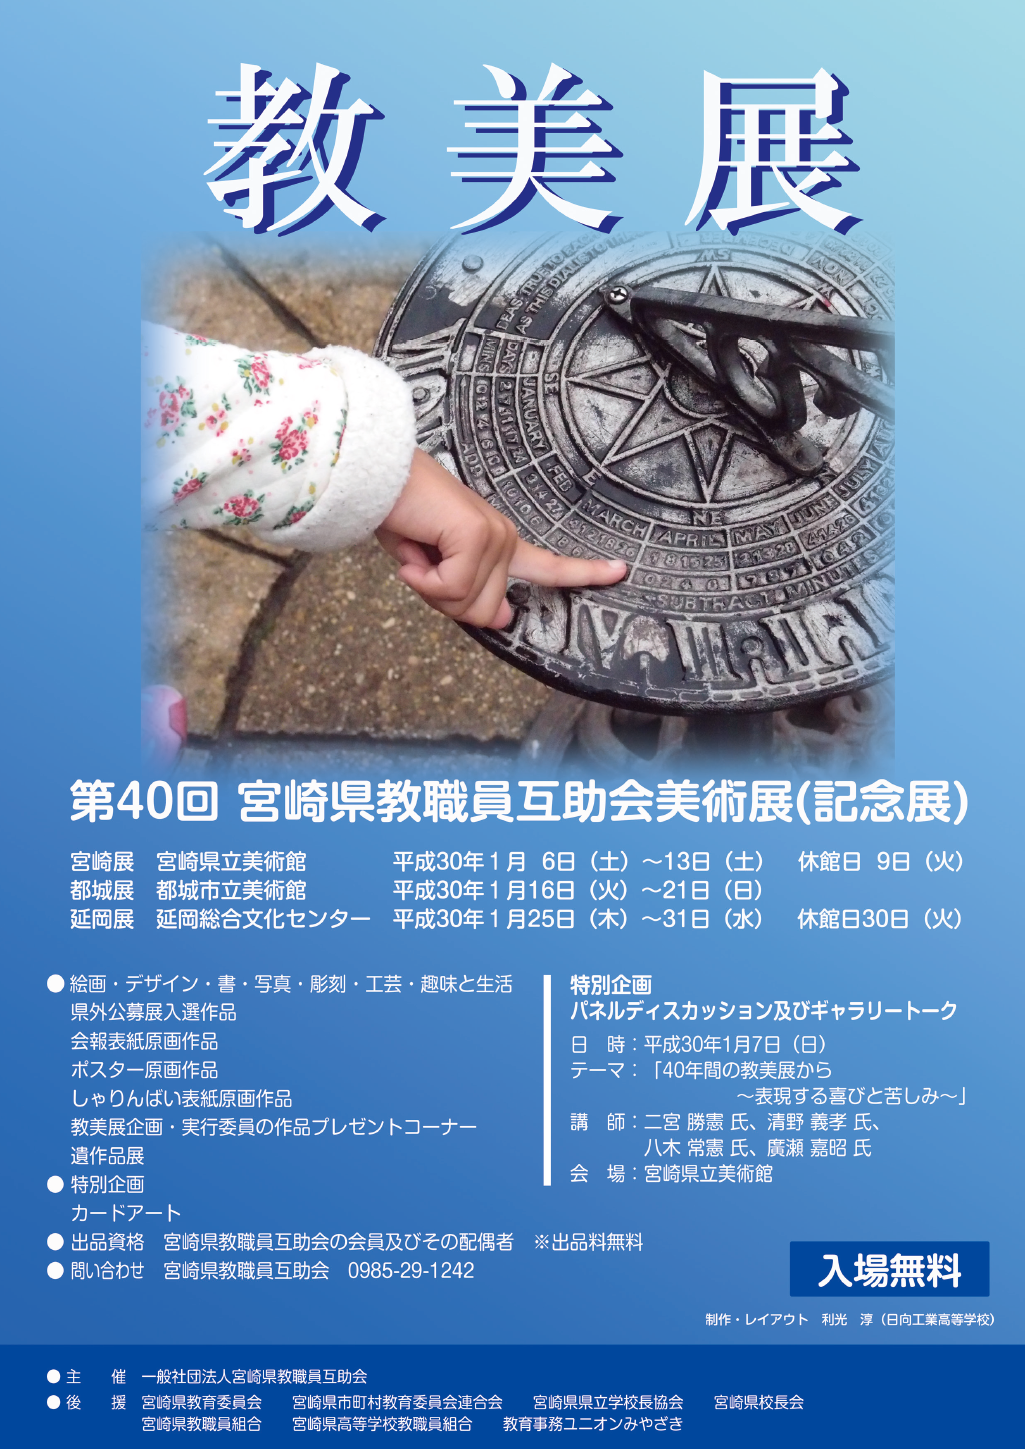 http://www.miyazaki-kyogo.or.jp/publiculture/exhibition/img/H29kyoubi-poster.png